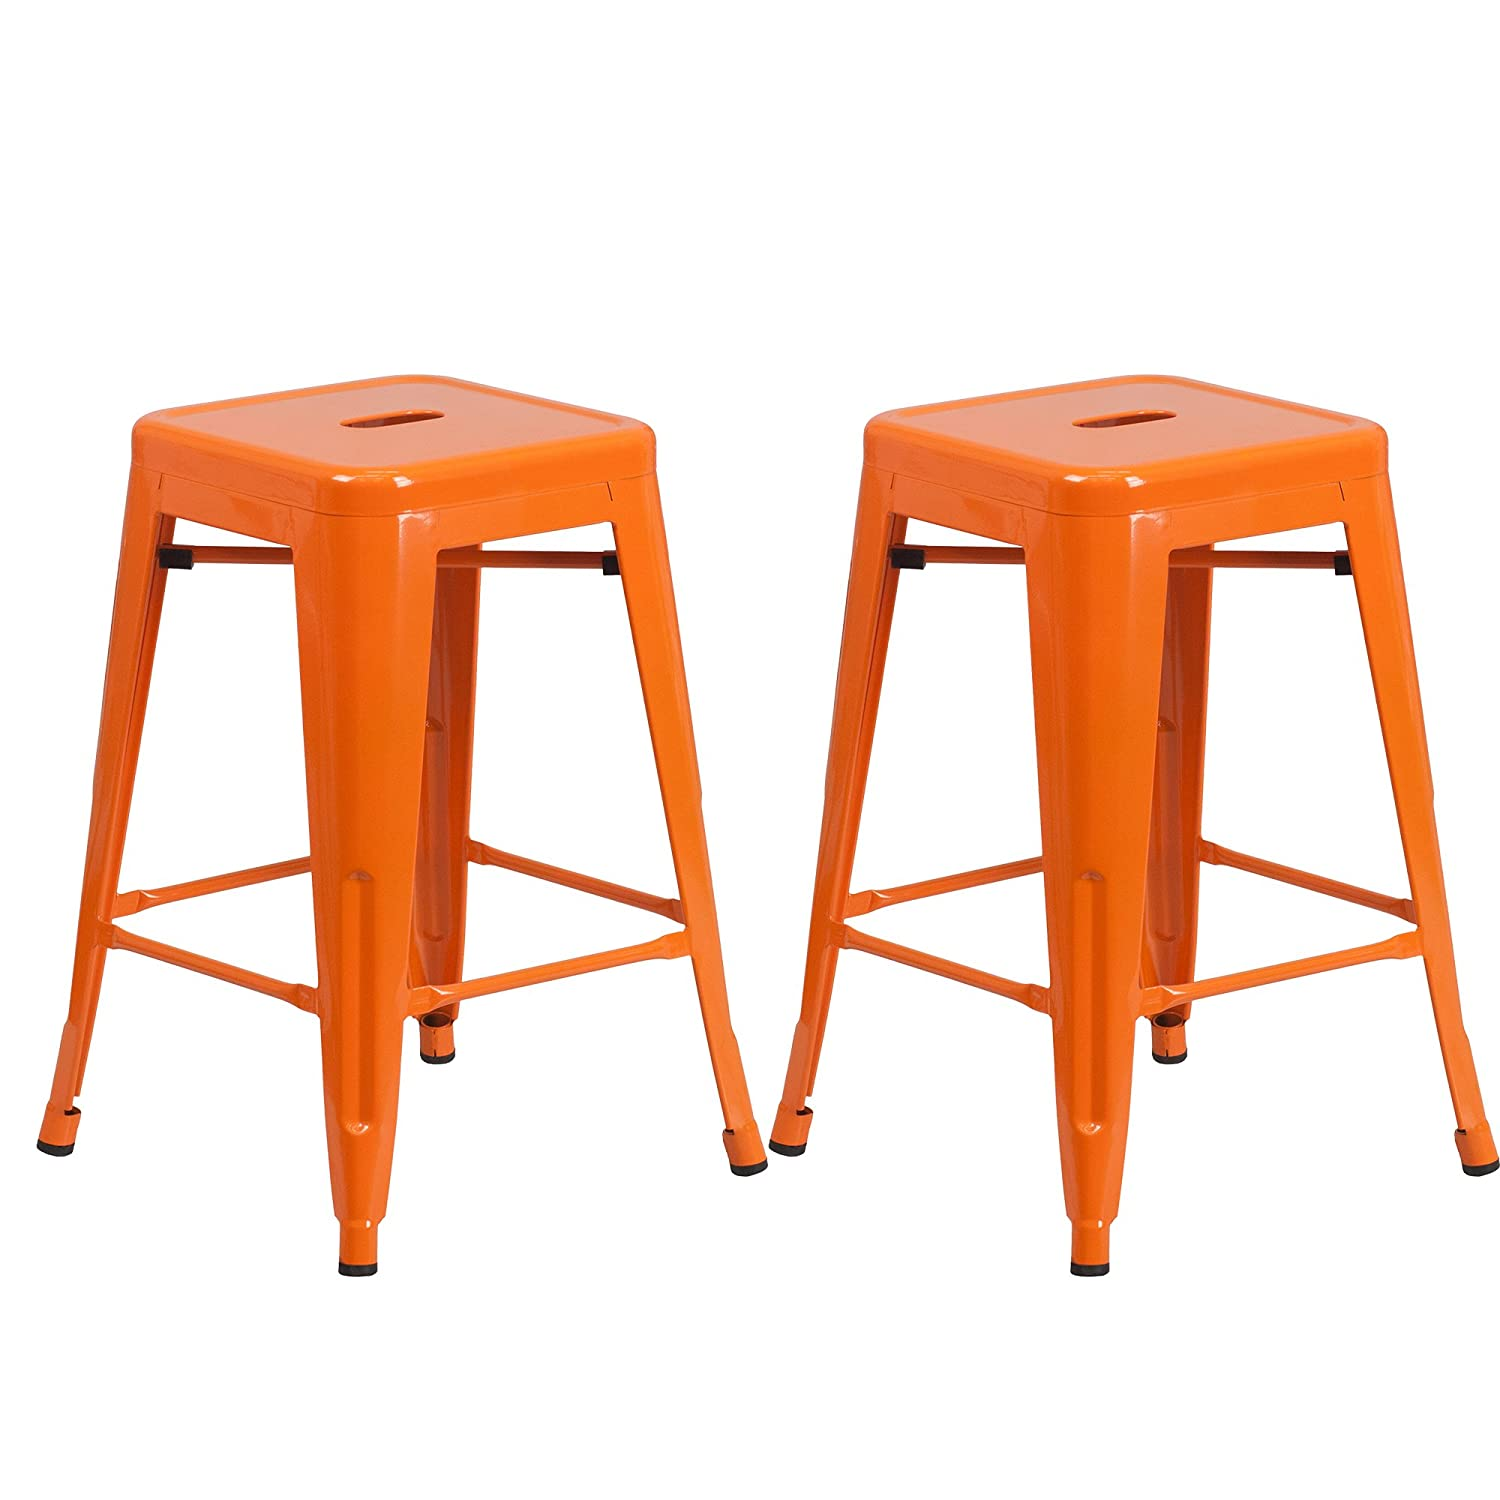 Vogue Furniture Direct Barstool 24 Backless Metal Stools Orange Set of 2 -VF1571003